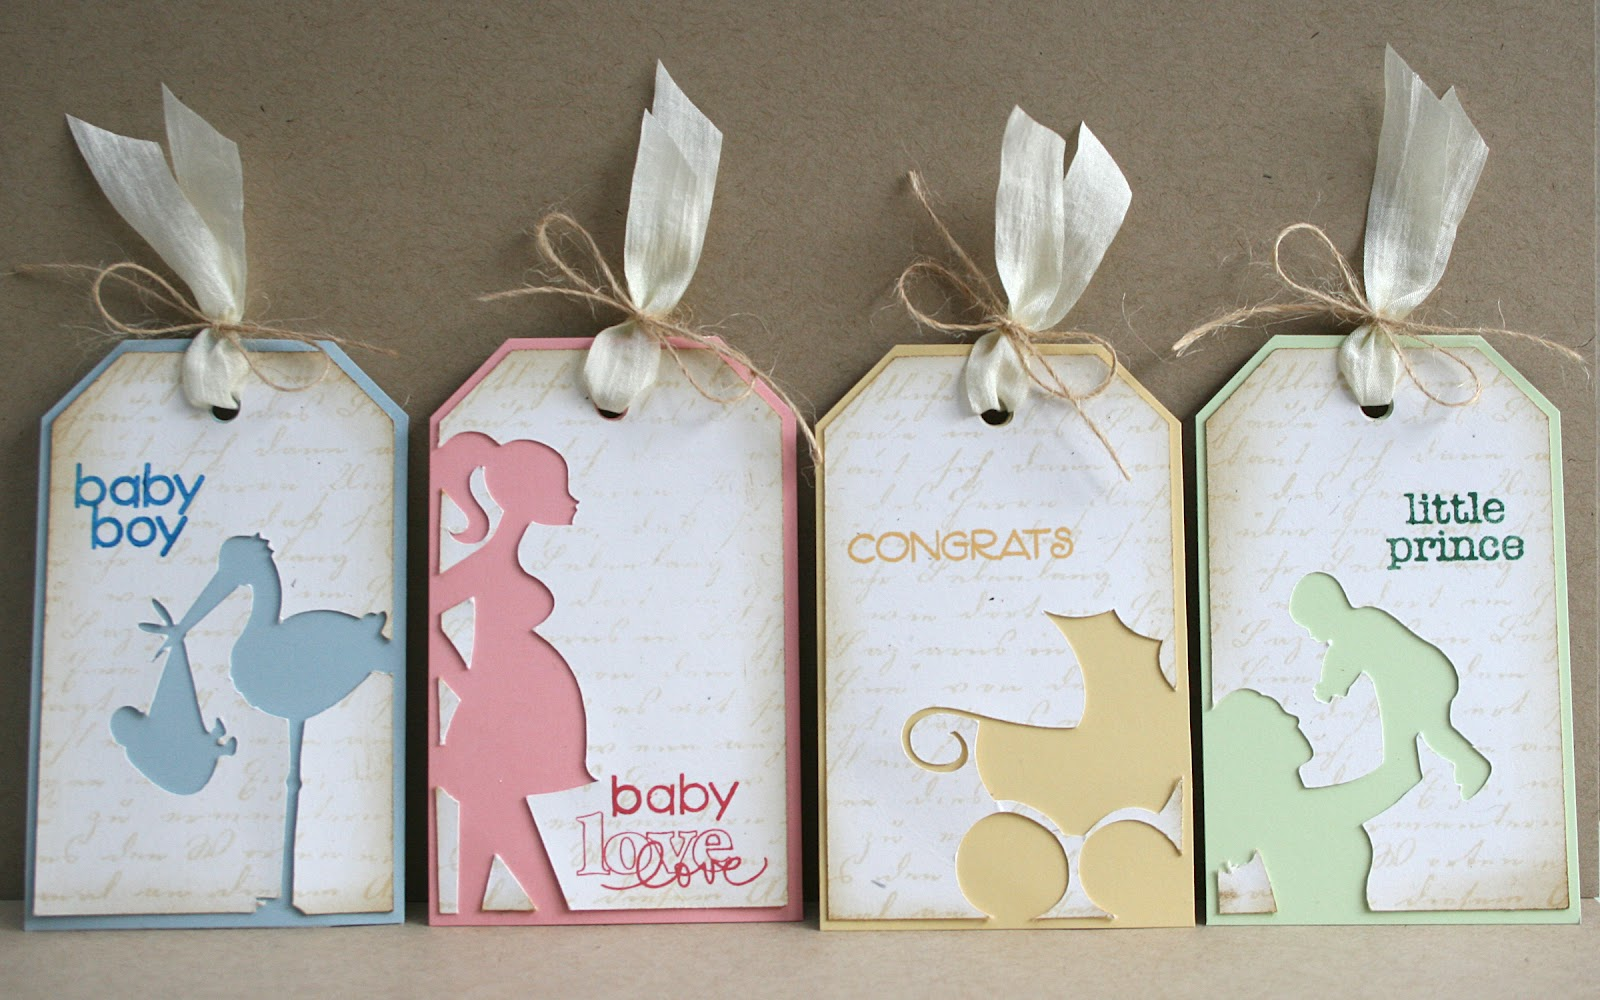 It's just an image of Unforgettable Baby Gift Tags